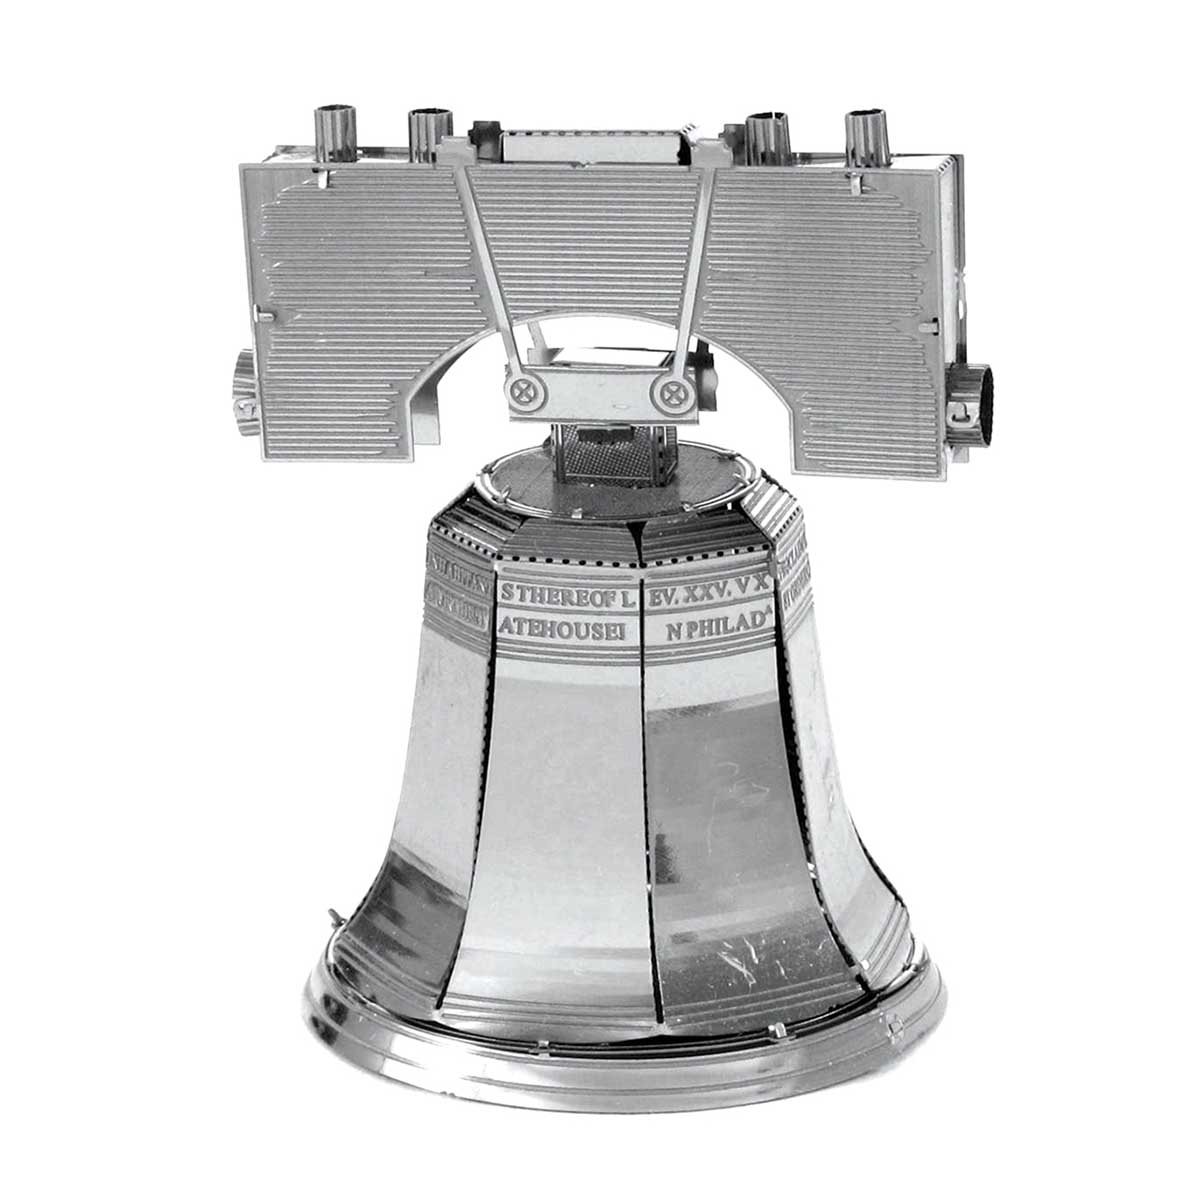 Liberty Bell Landmarks / Monuments Metal Puzzles